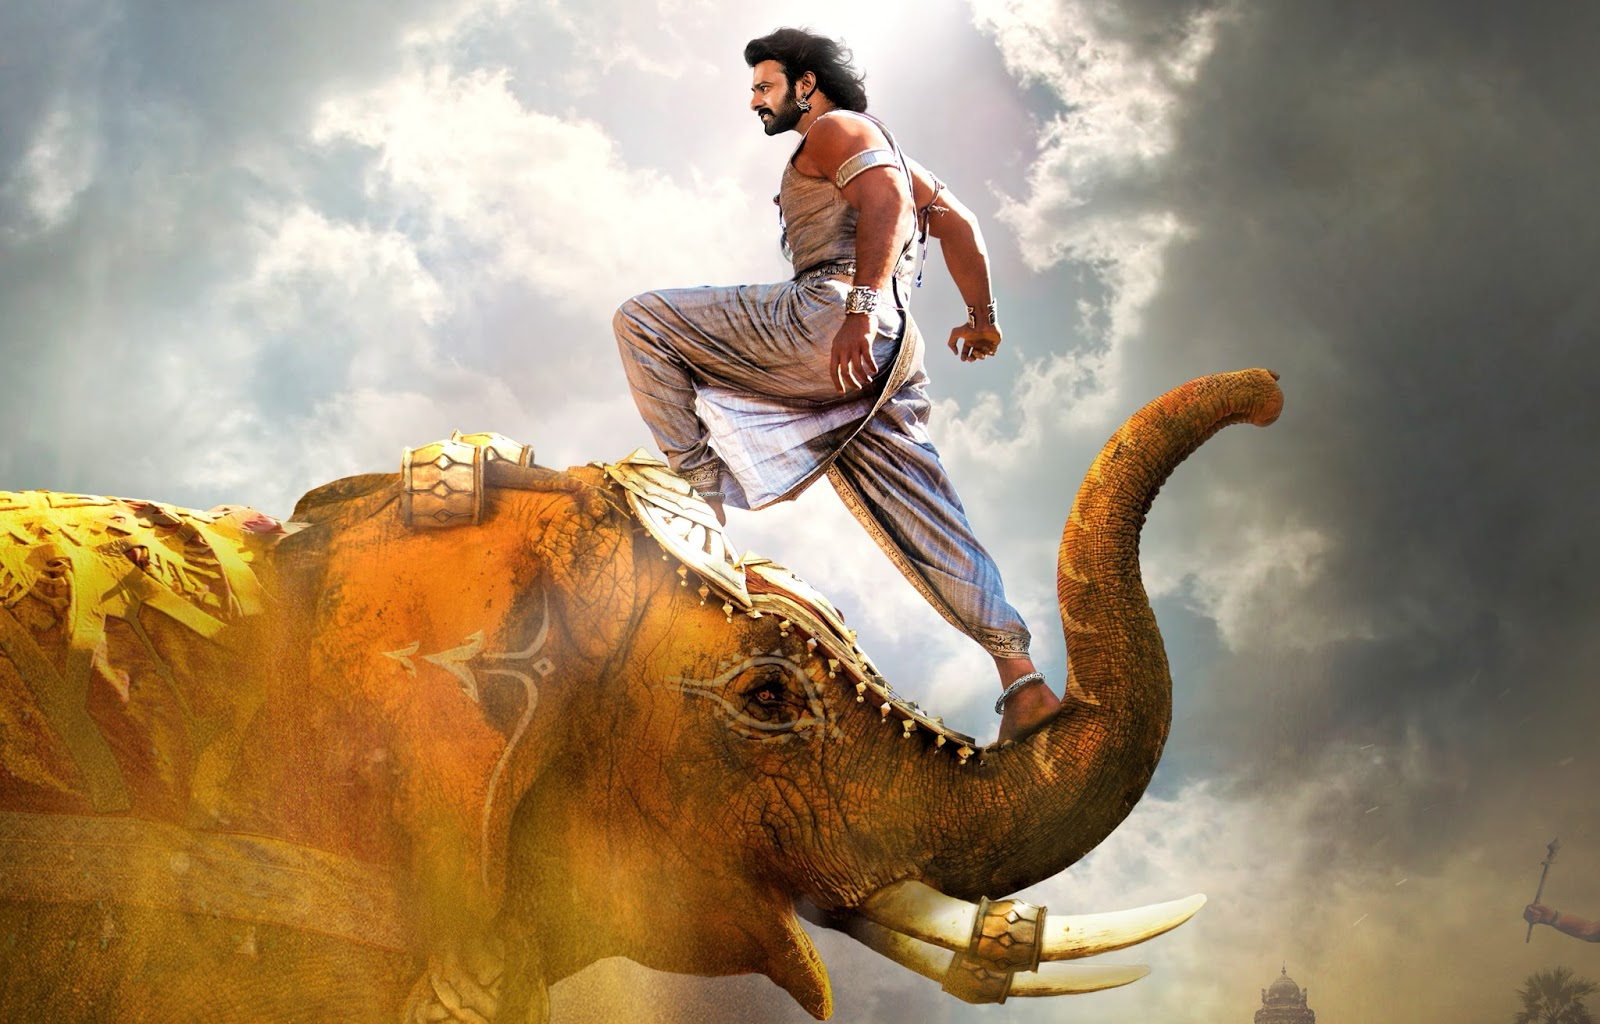 Prabhas Hd Wallpapers: Latest Full HD Wallpapers